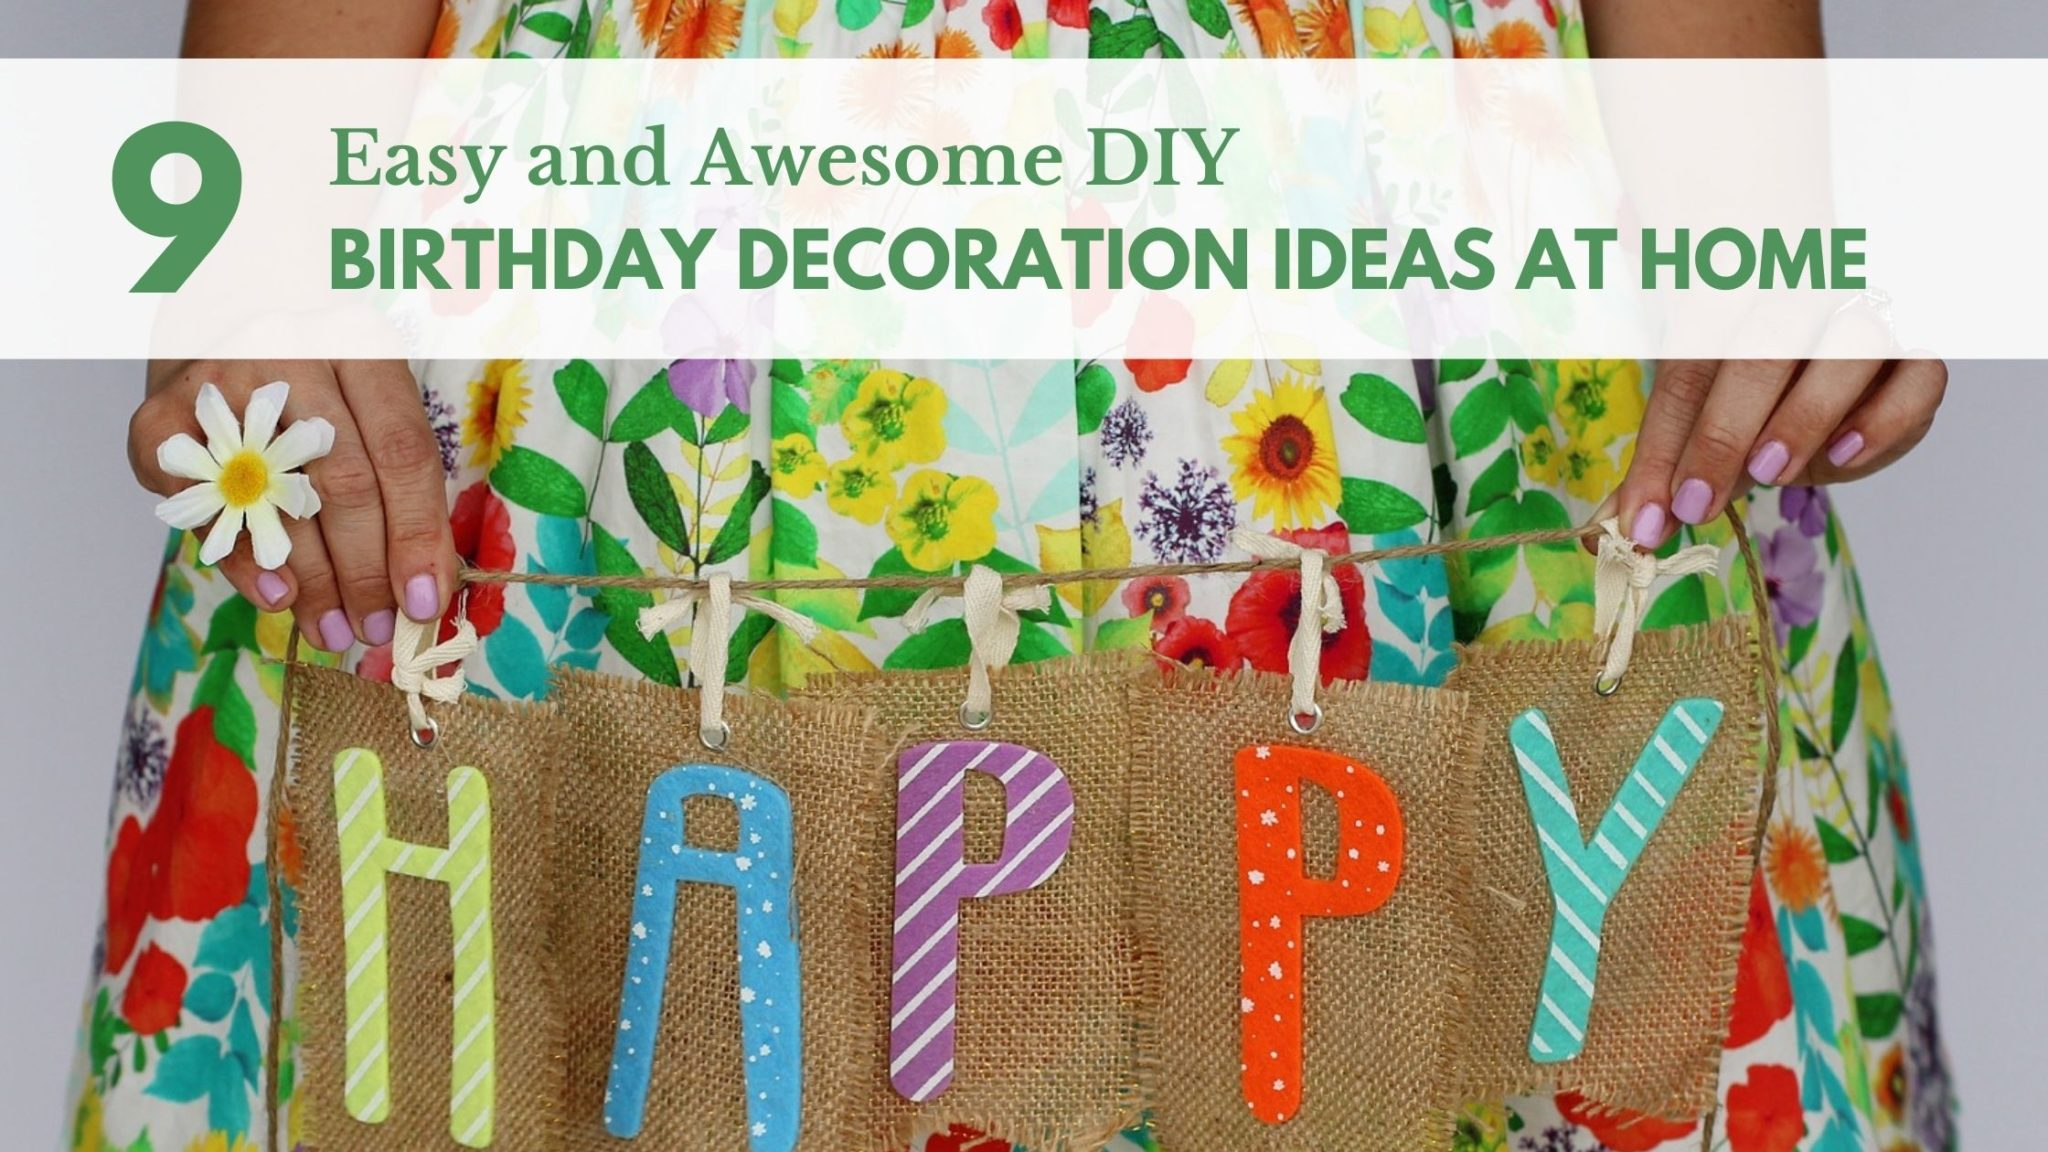 9 Easy And Awesome Diy Birthday Decoration Ideas At Home Greentikki